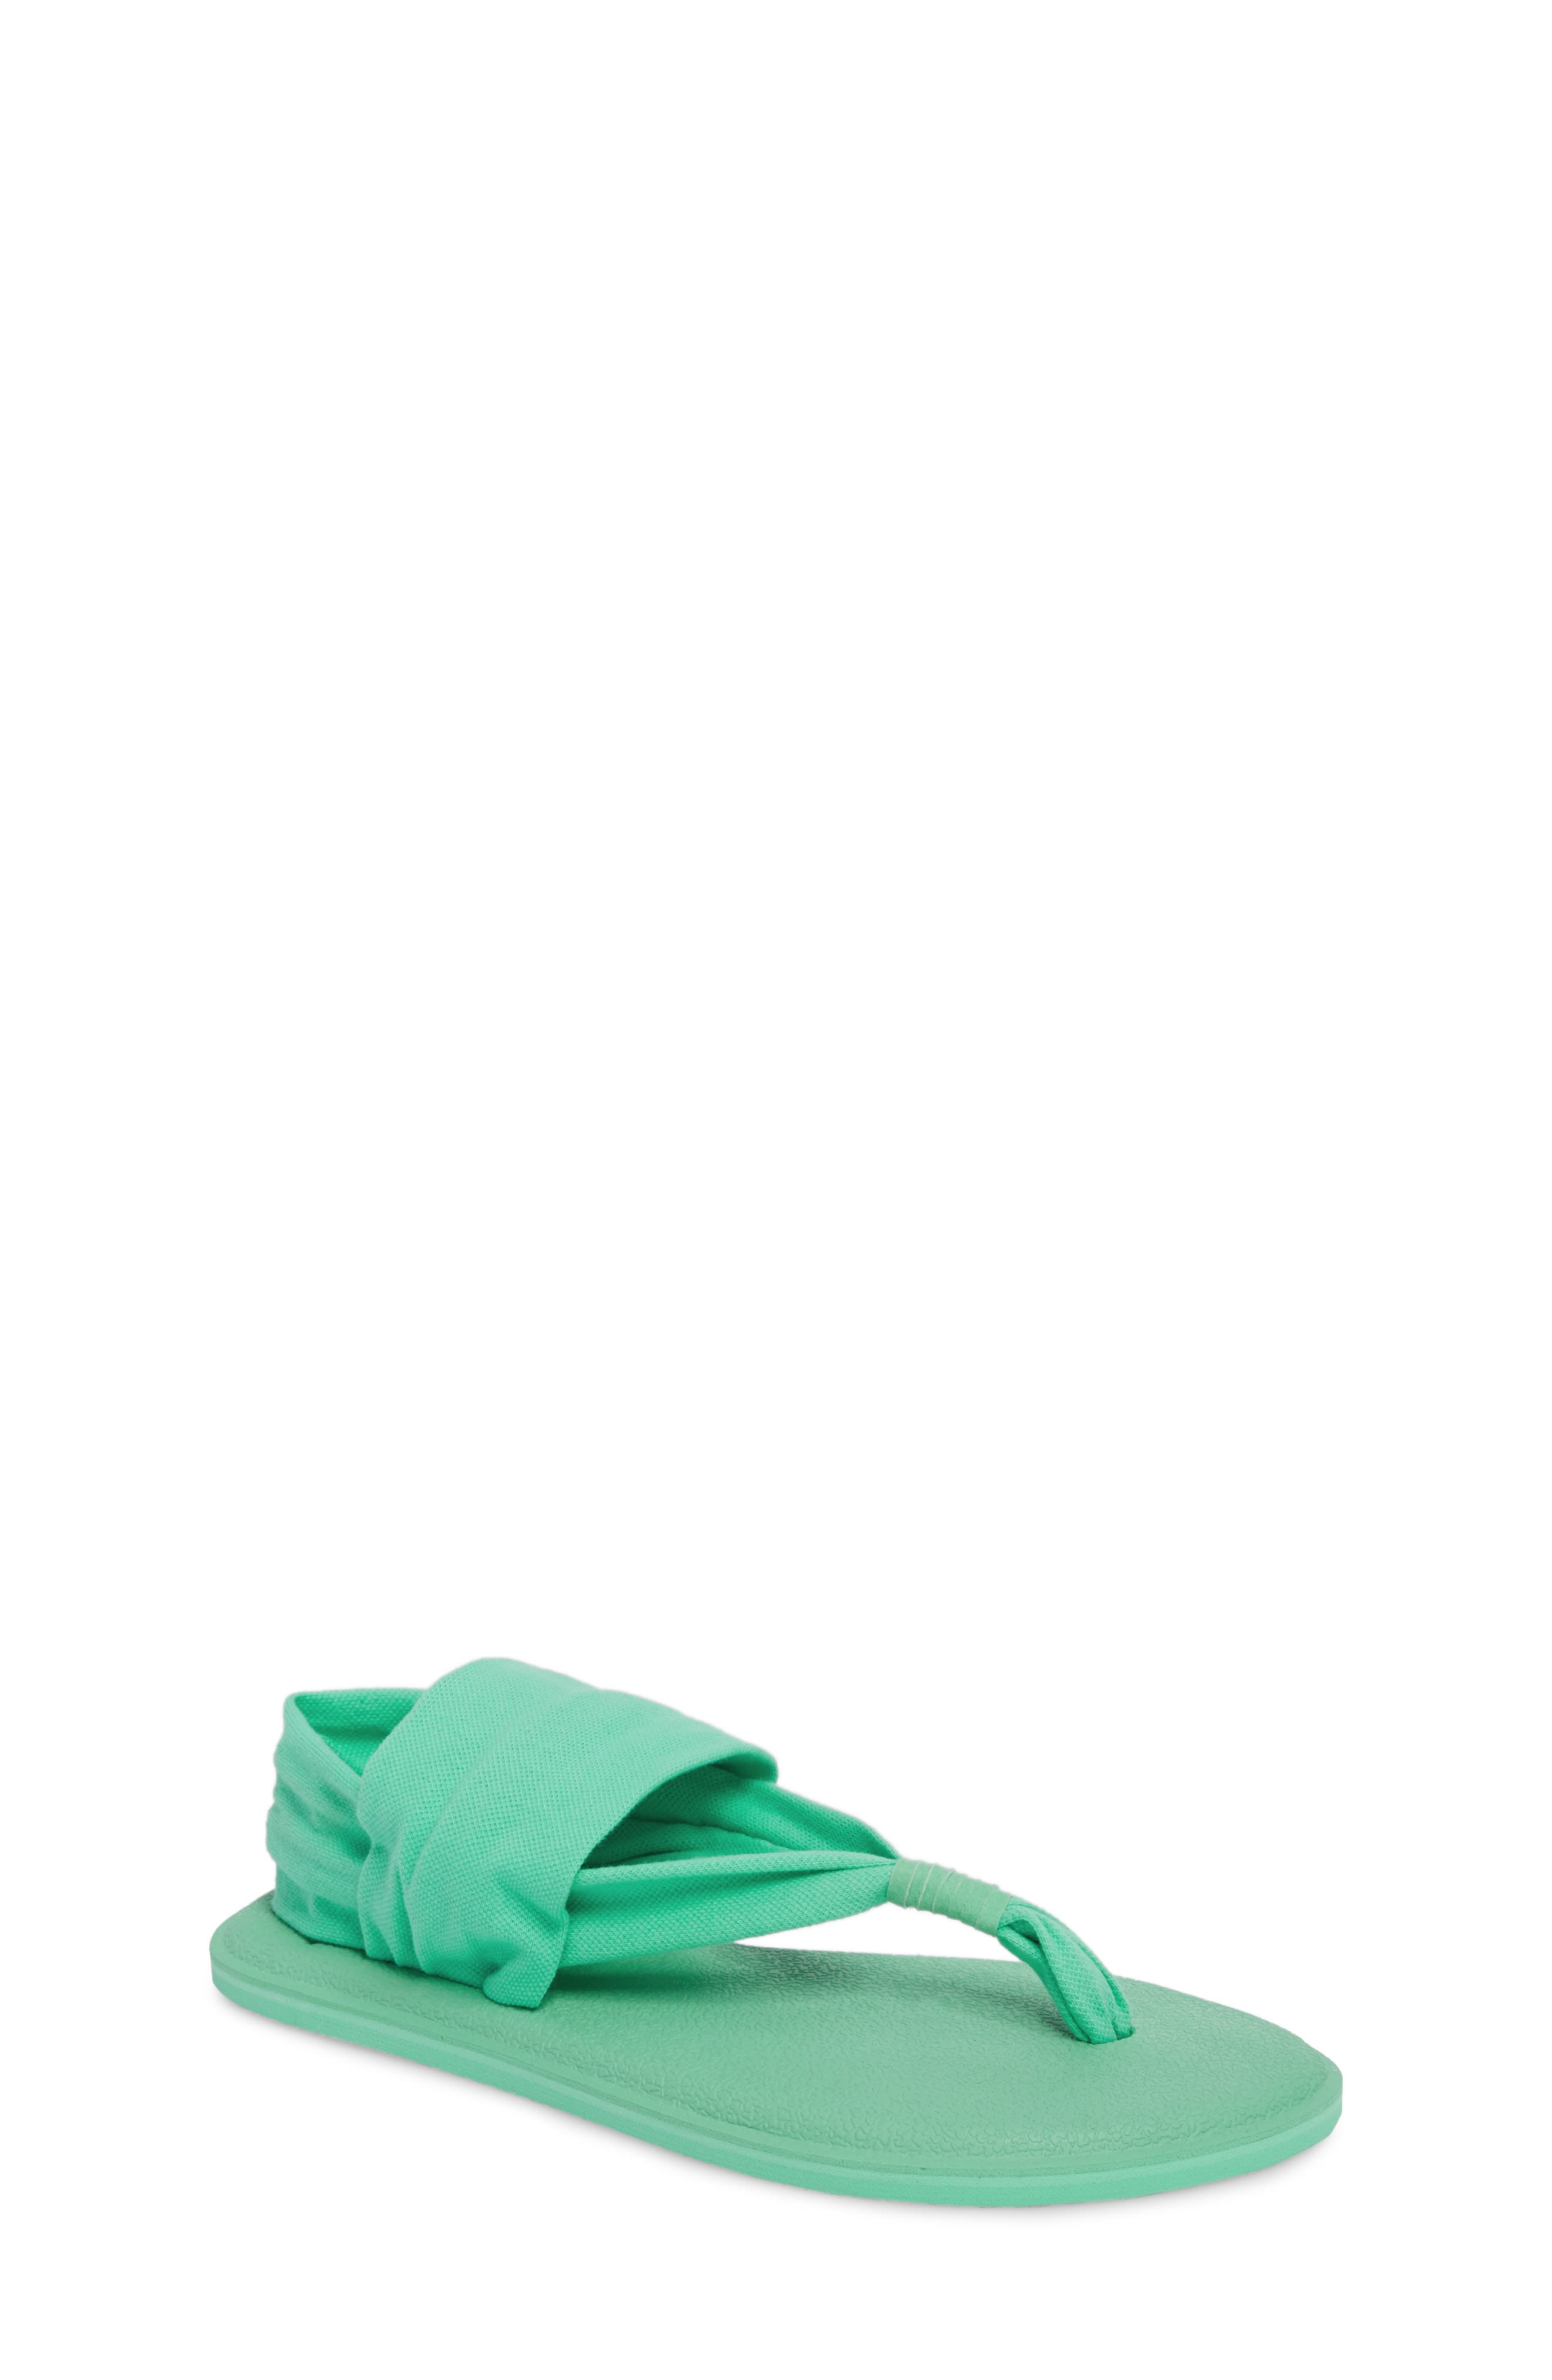 'Yoga Sling Burst' Sandal,                         Main,                         color, 305